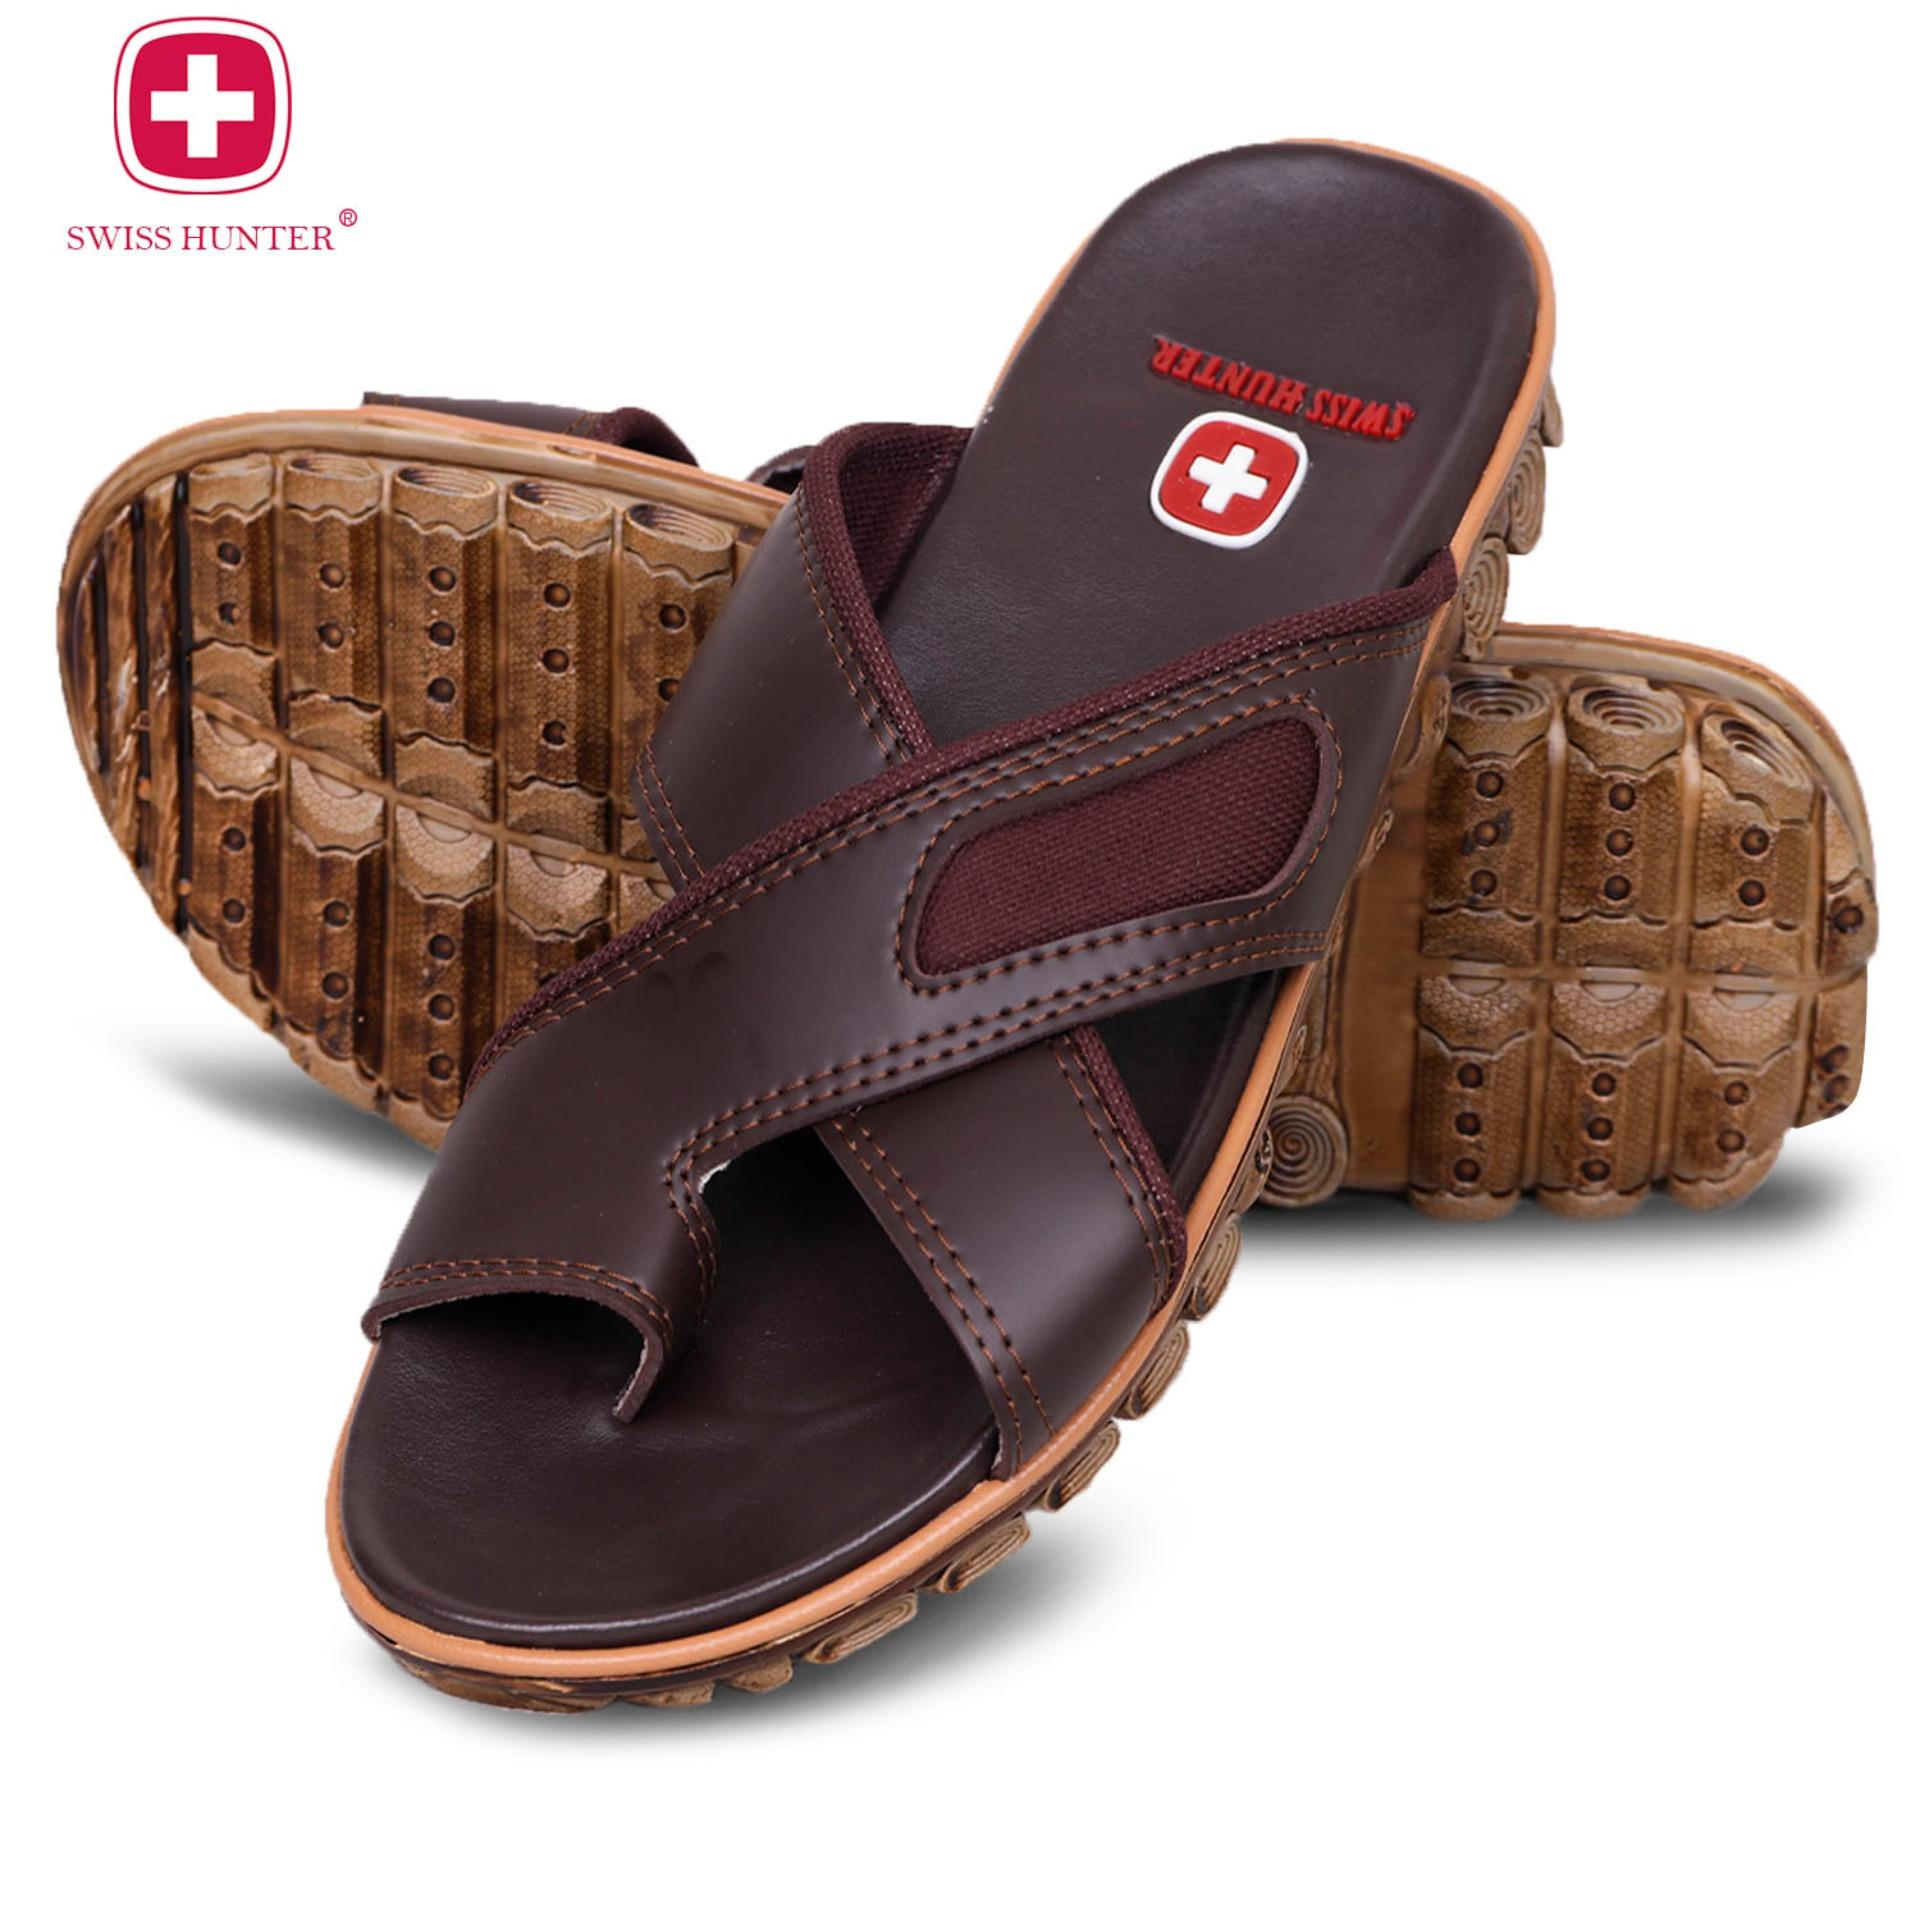 Swiss hunter tactical sandal pria - Dark Brown